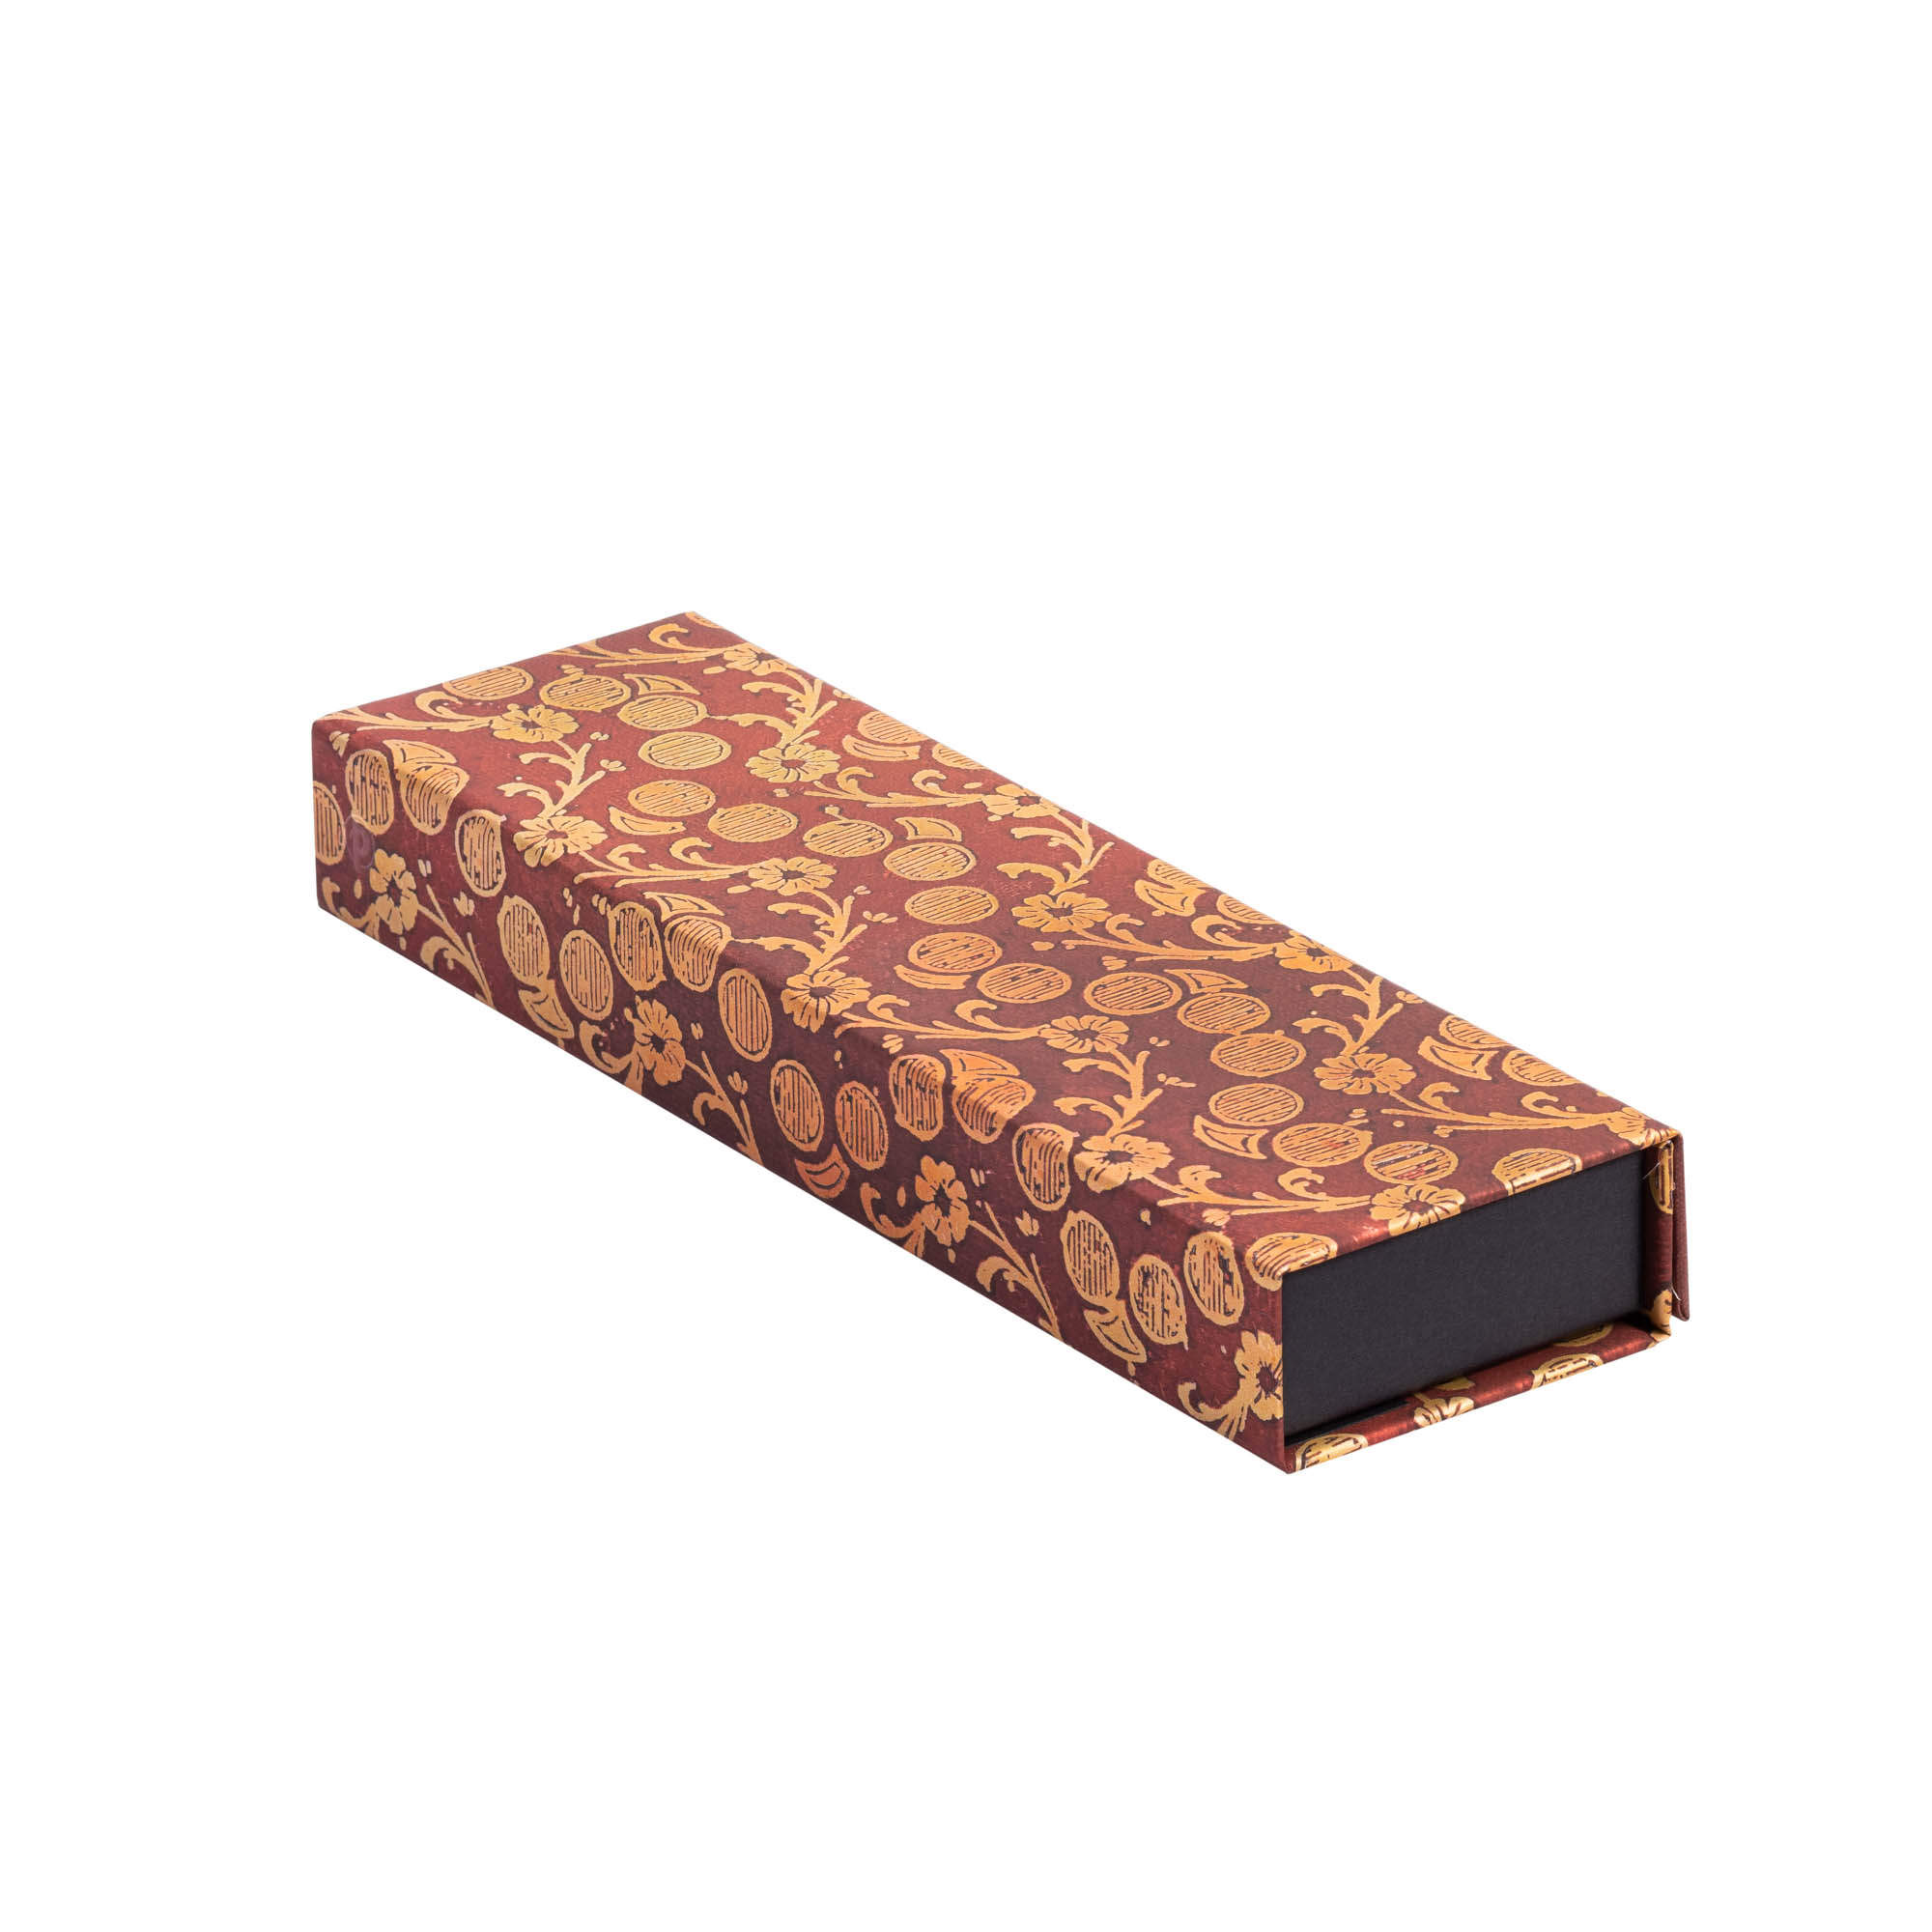 Paperblanks Virginia Woolf's The Waves Vol. 4 Pencil Case